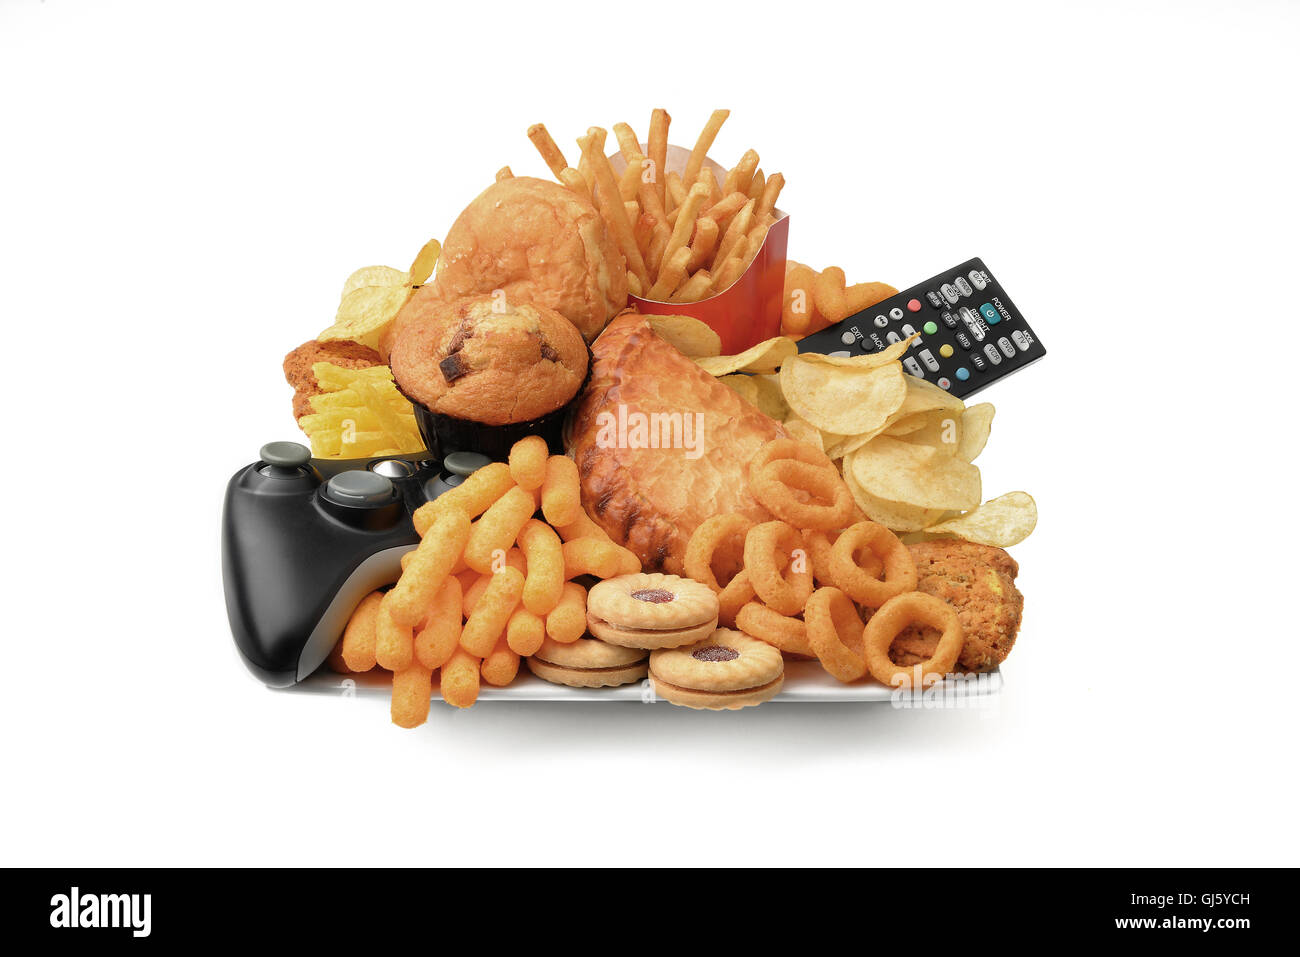 Unhealthy  food and lifestyle on a plate with junk food chips crisps with remote control, console bad diet obesity - Stock Image